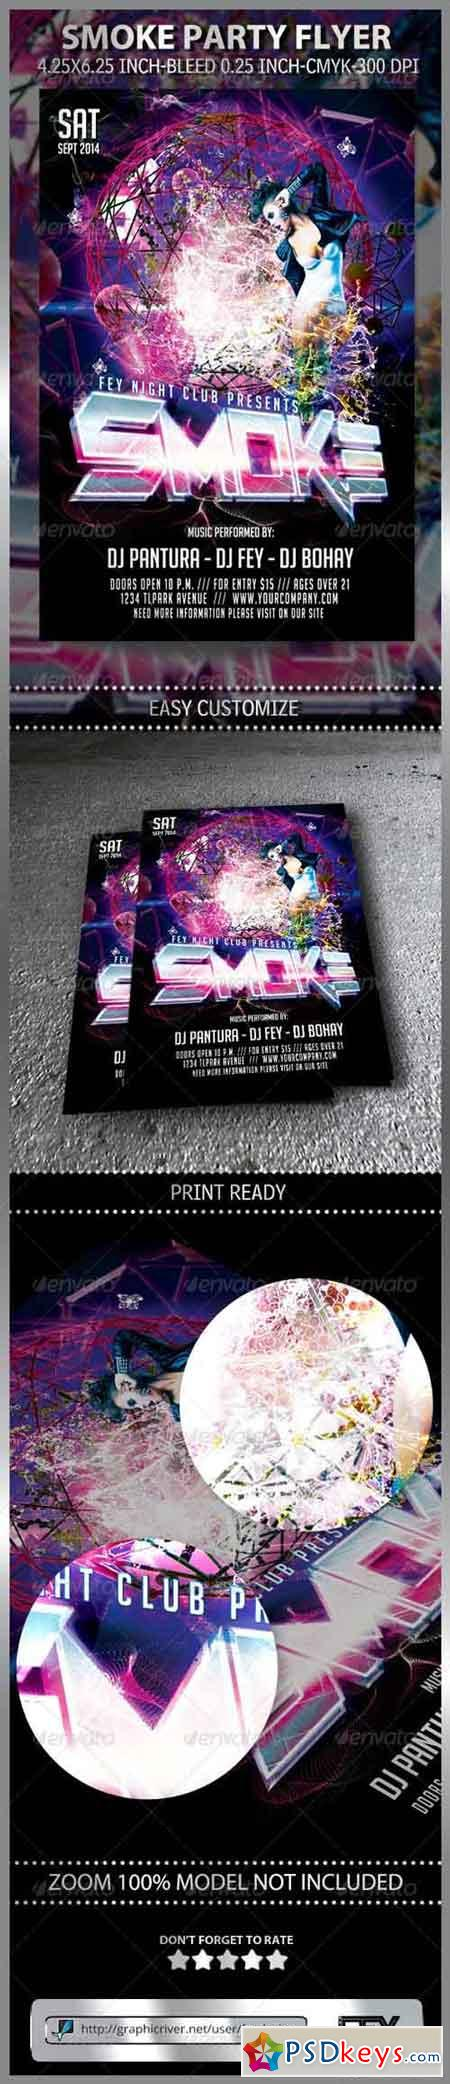 Smoke Party Flyer 8517749